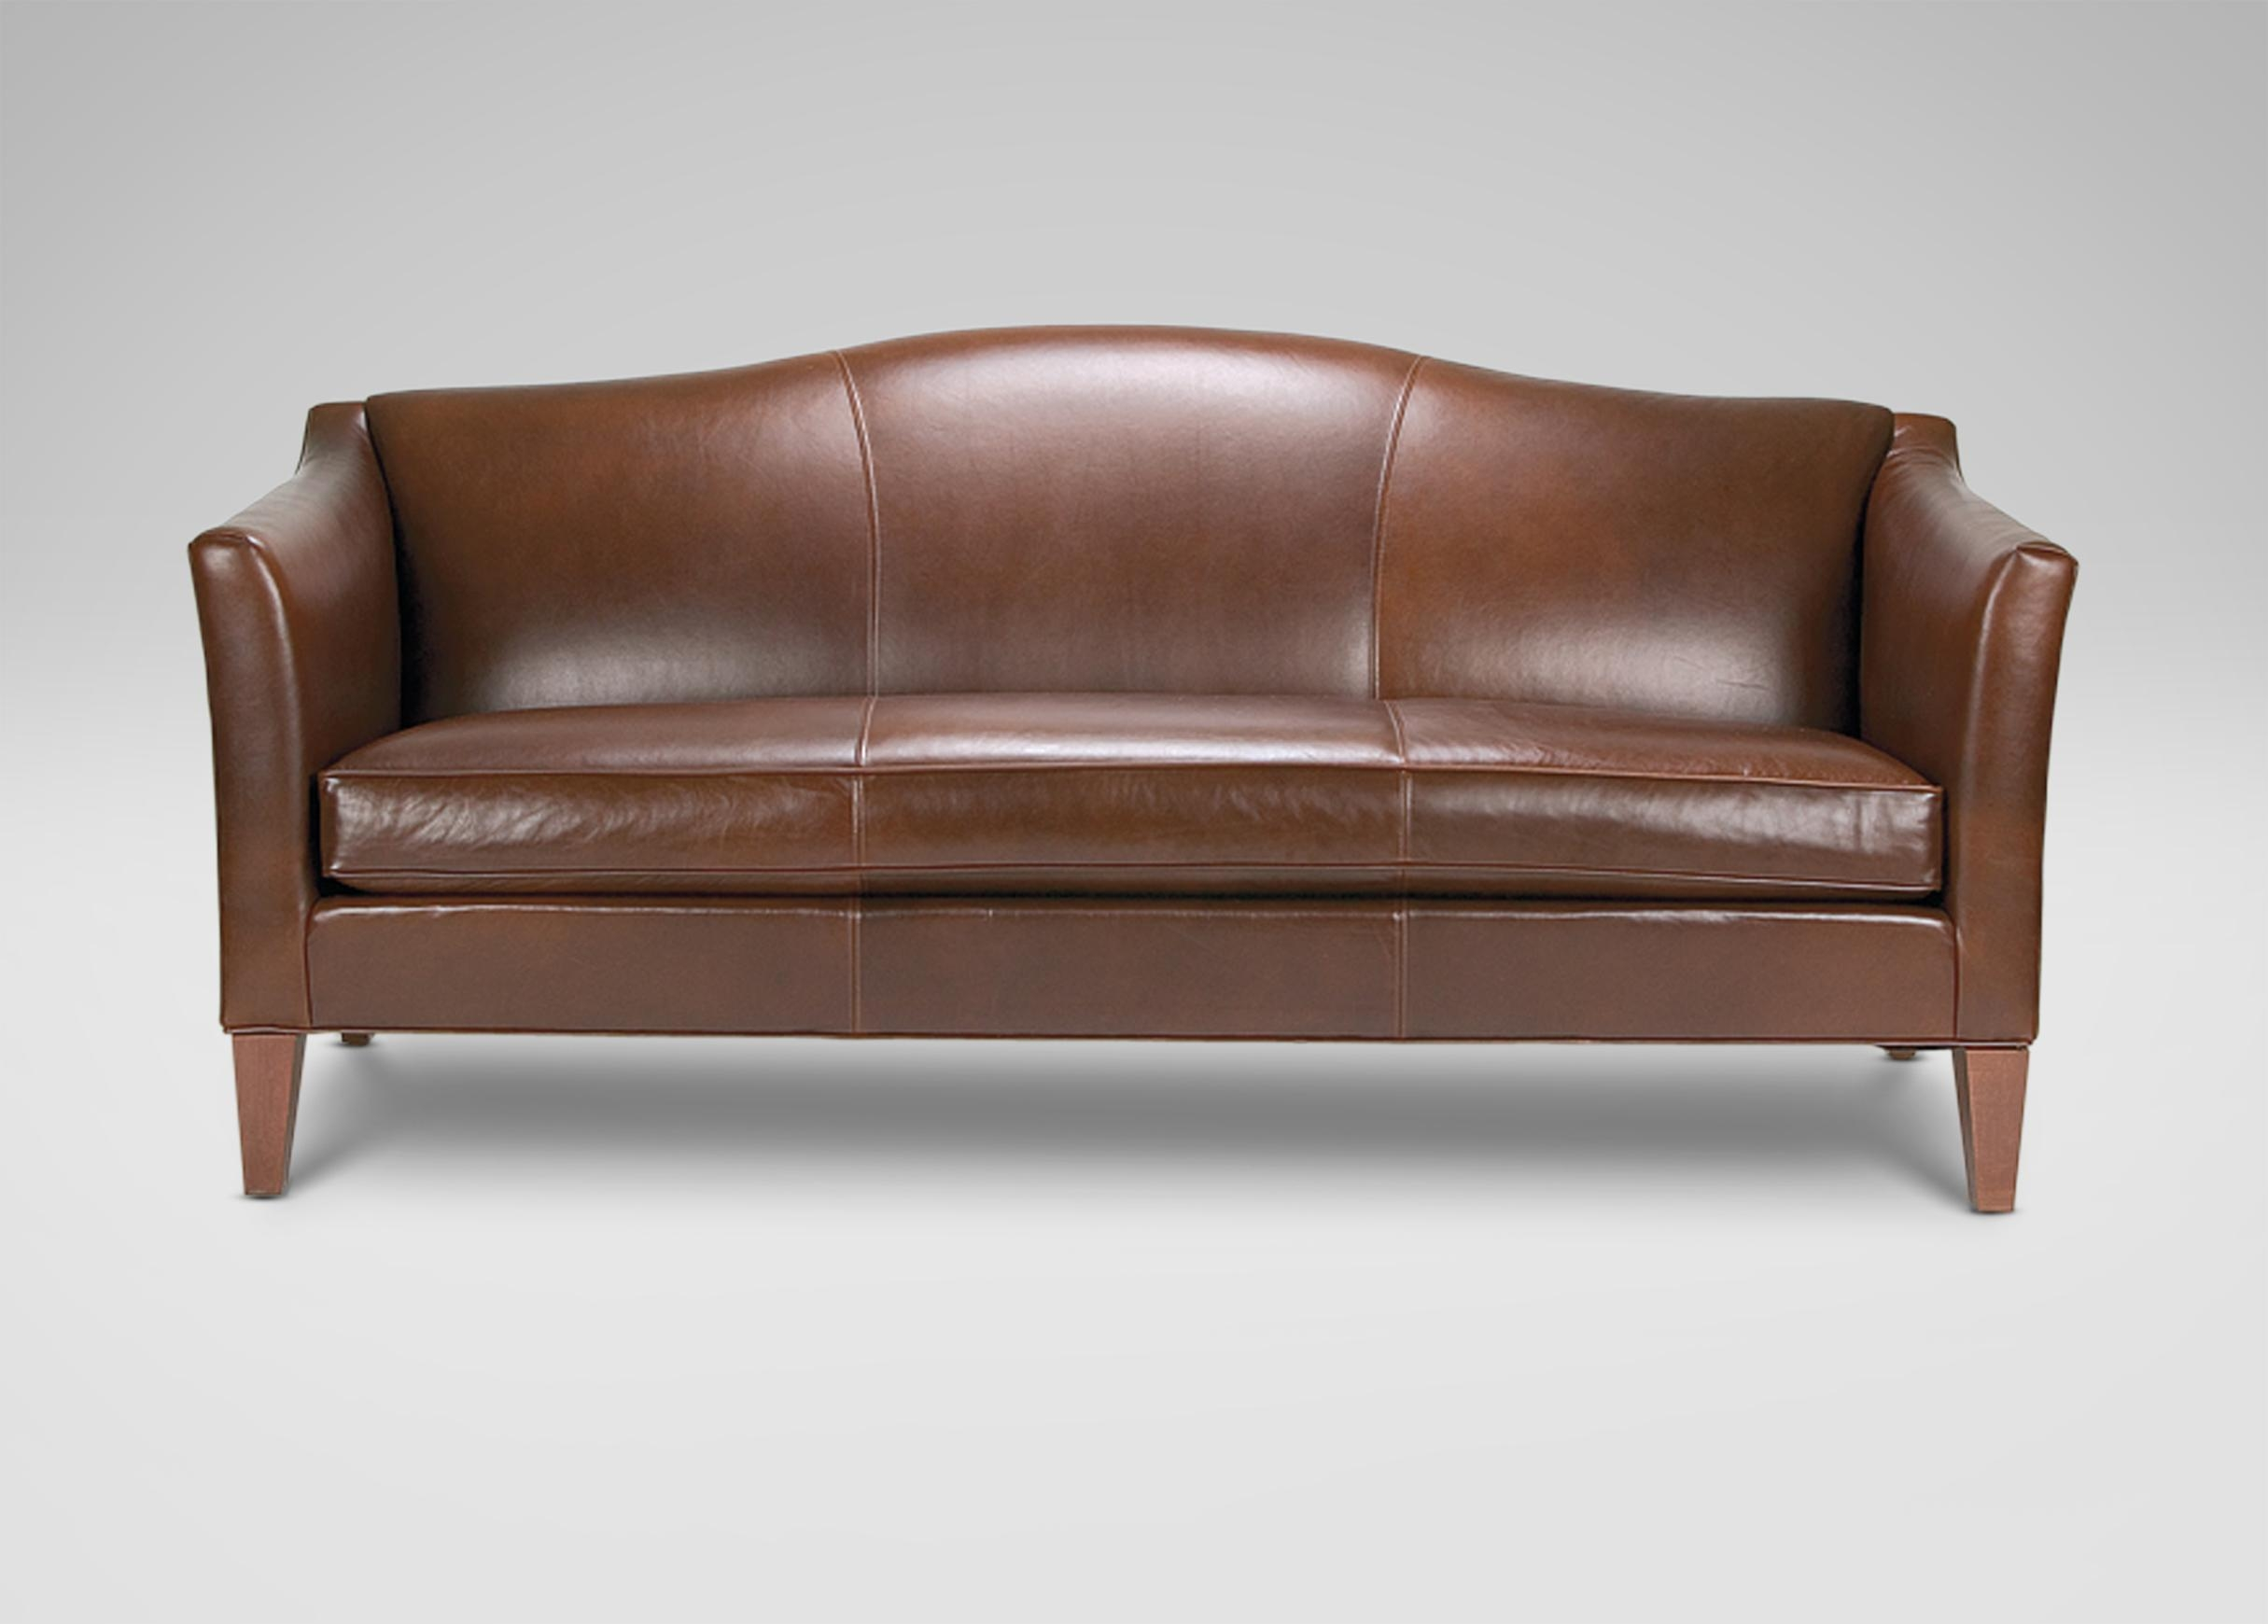 Camelback Leather Sofa With Ideas Hd Gallery 26777 | Kengire Regarding Camelback Leather Sofas (View 8 of 20)